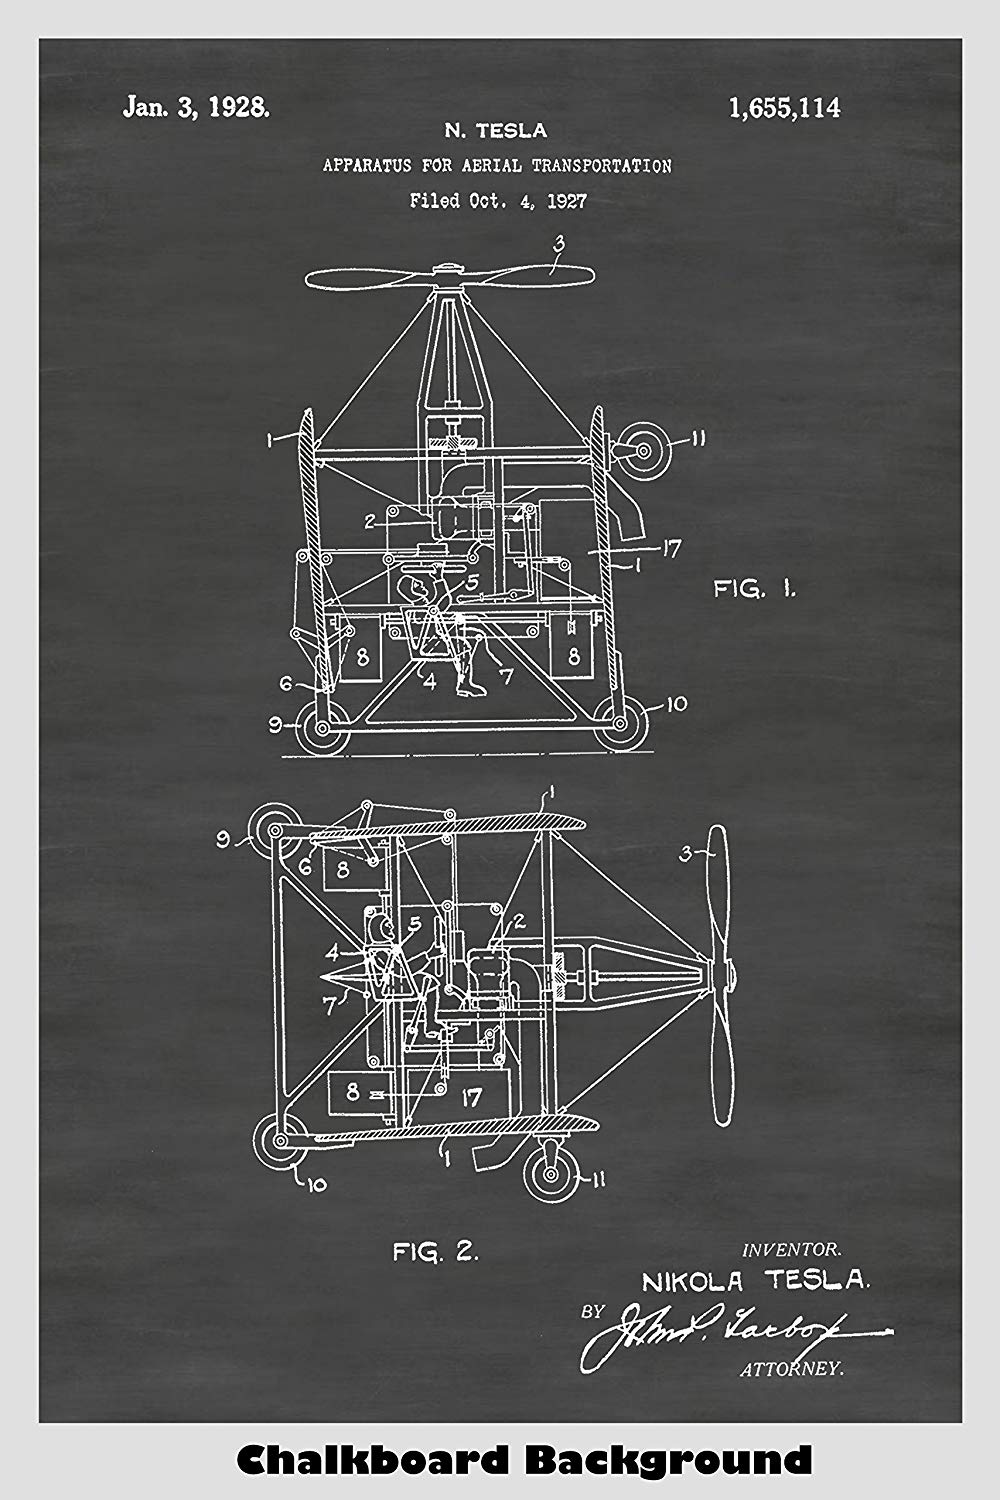 Nikola Tesla Flying Machine Helicopter Poster Patent Print ... on